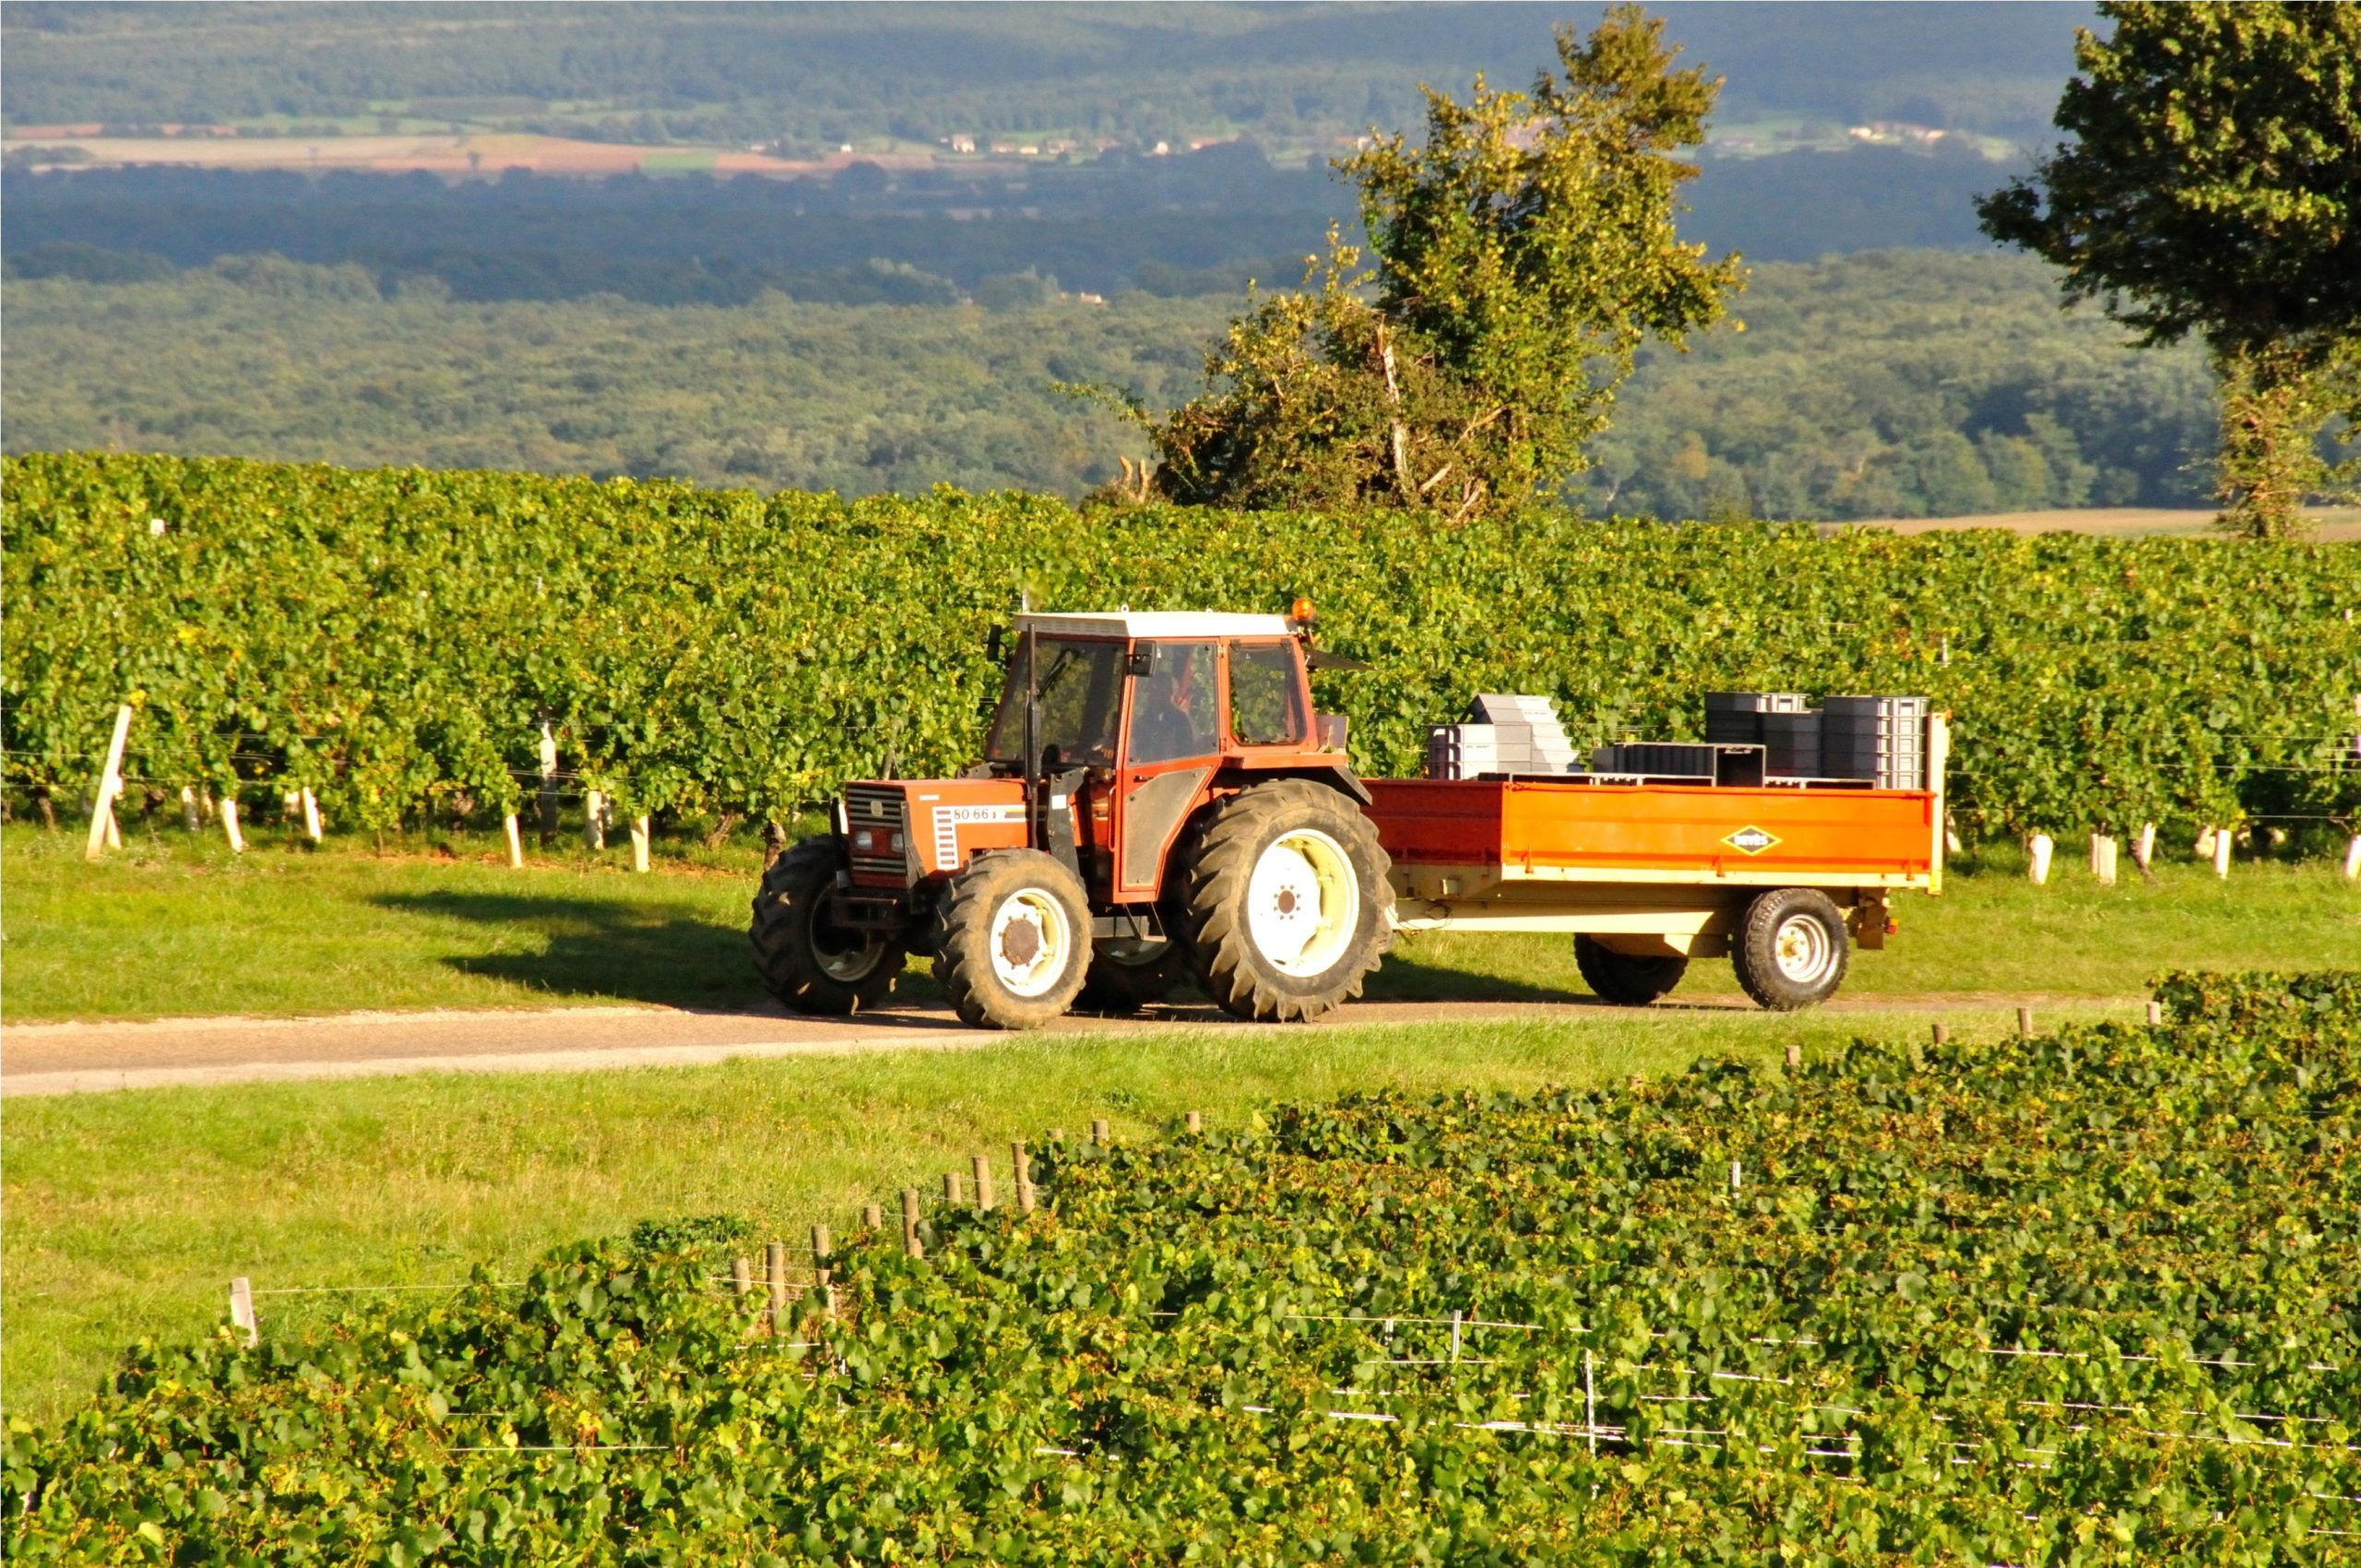 Panoramic image of a harvester